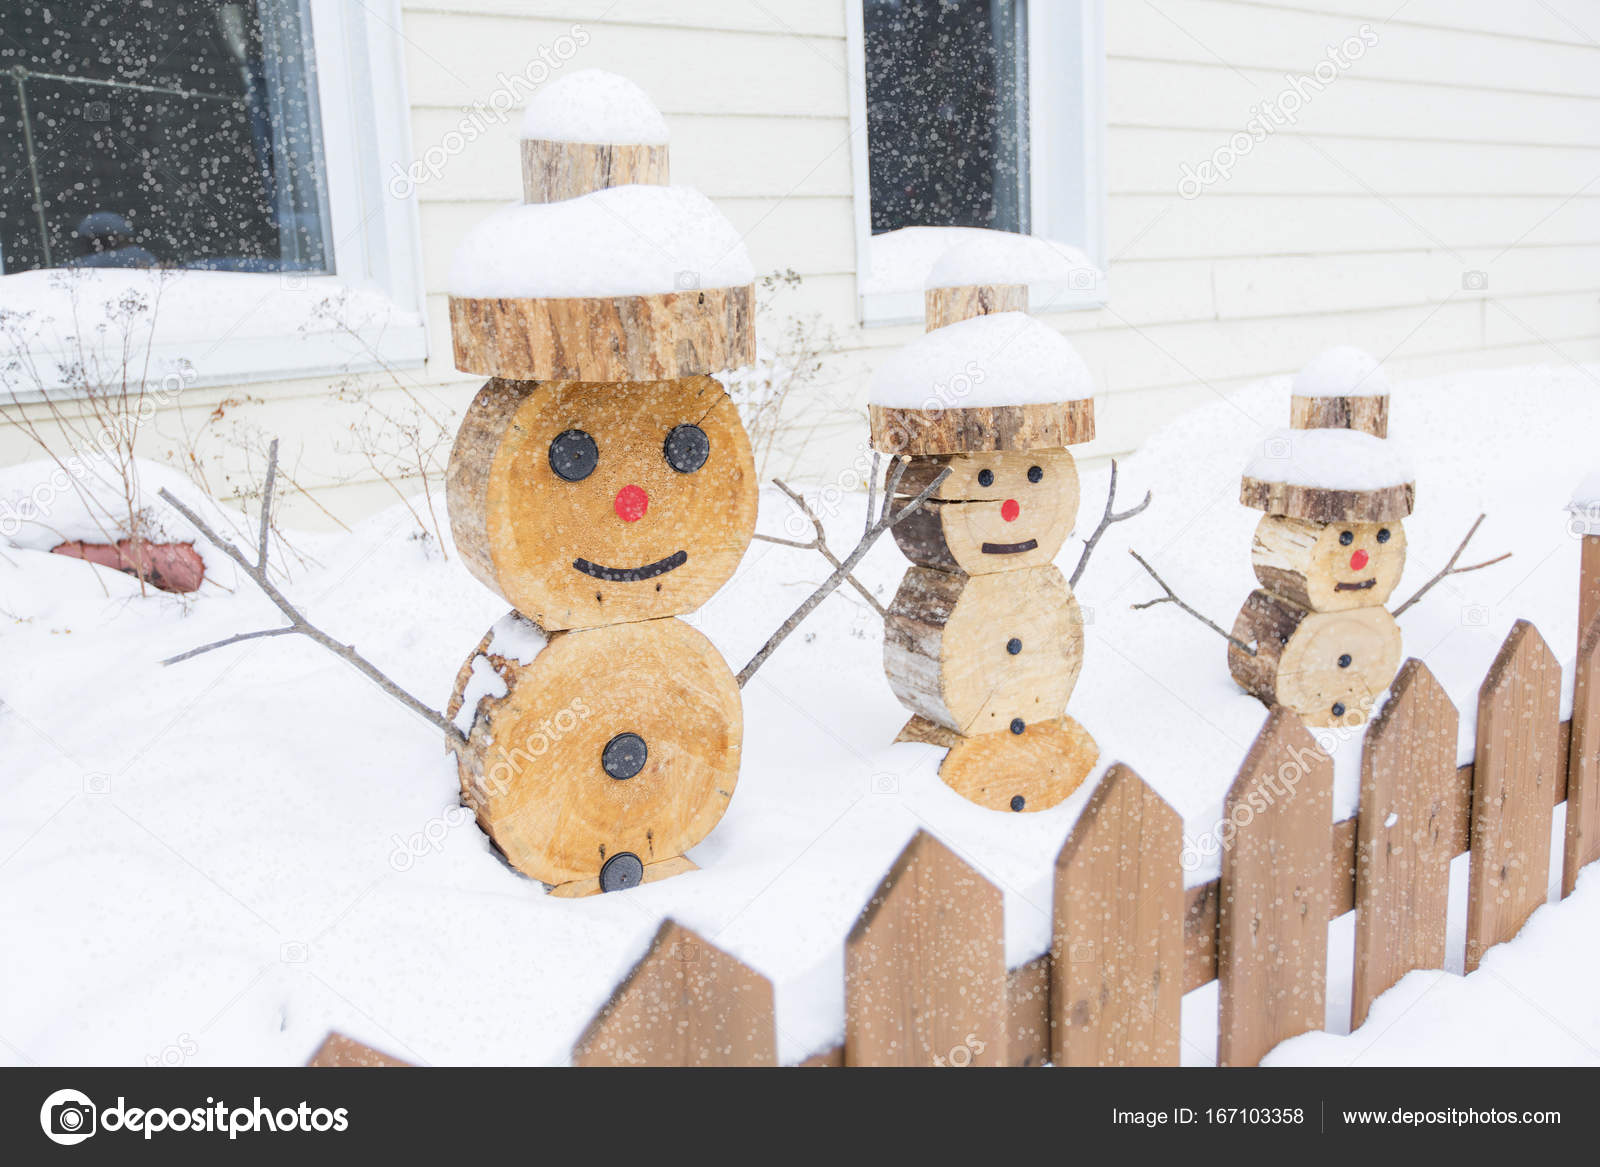 a snowman made in piece of wood with fence on the front photo by lopolo